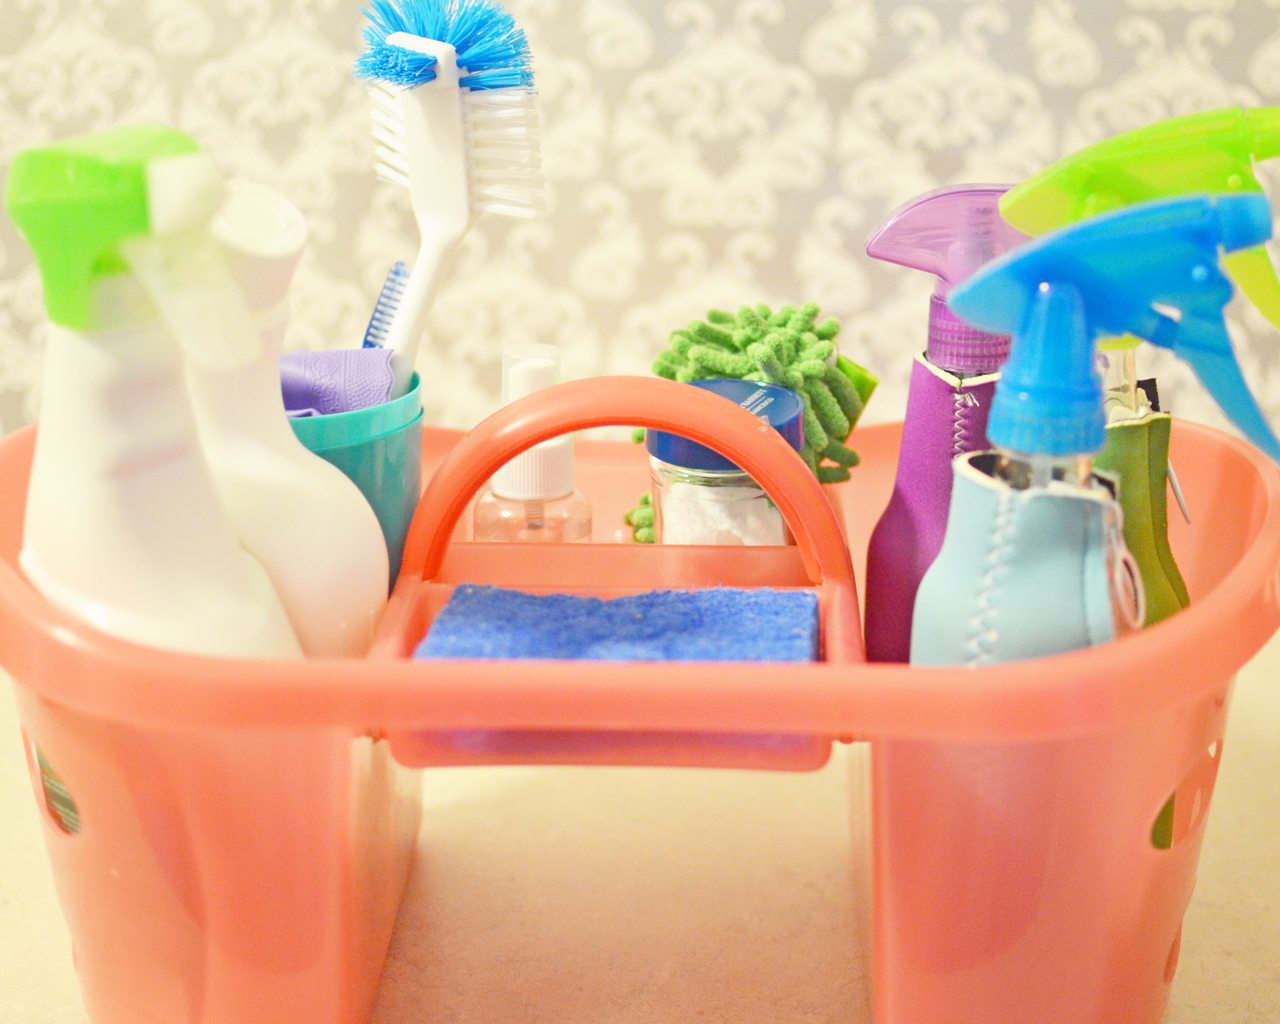 Easily Clean Your House With An Organized Cleaning Caddy